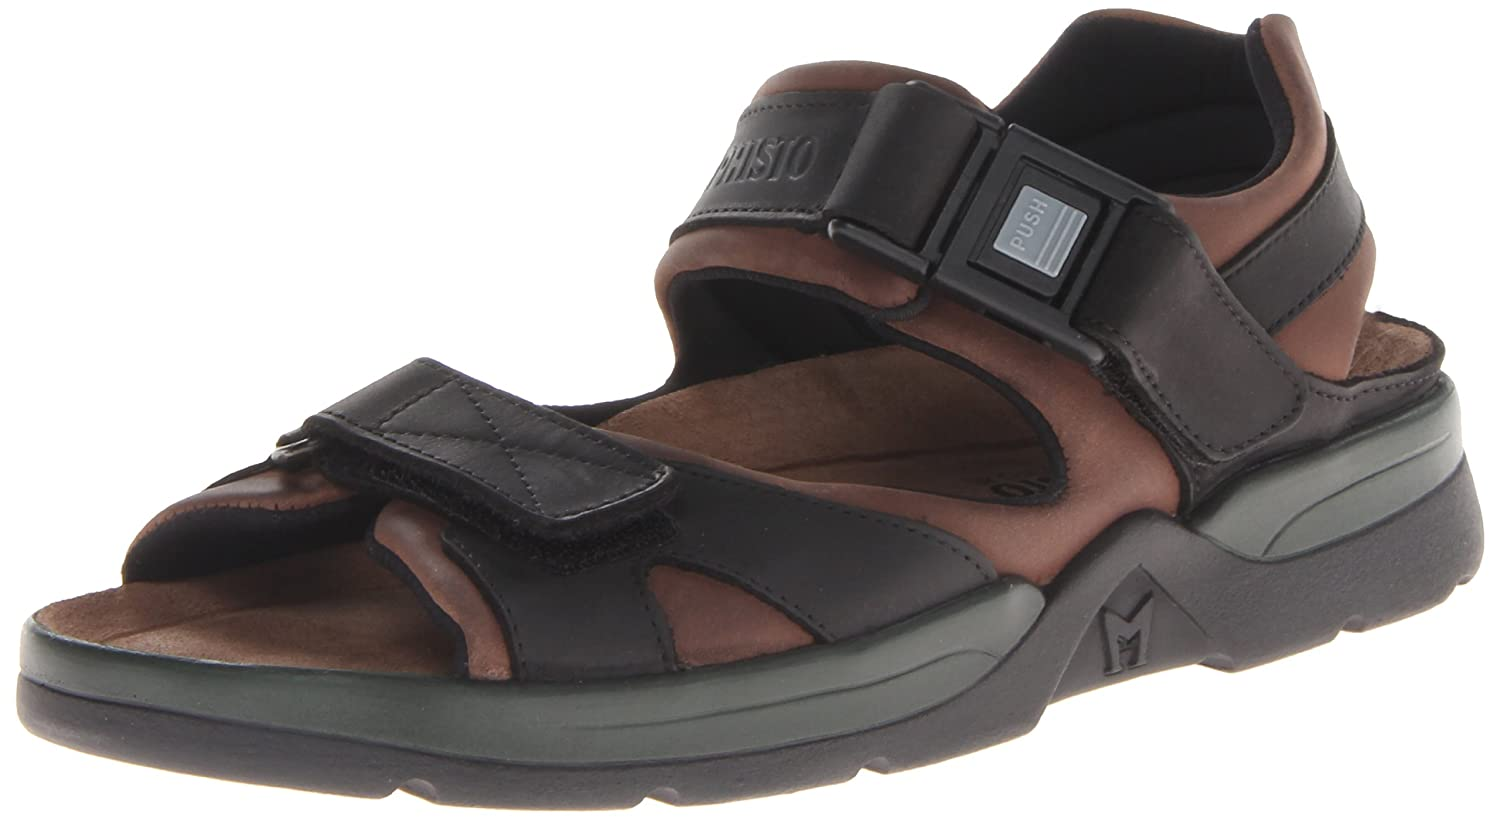 Mephisto Men s Shark Fit Sandal B003KVKYUM